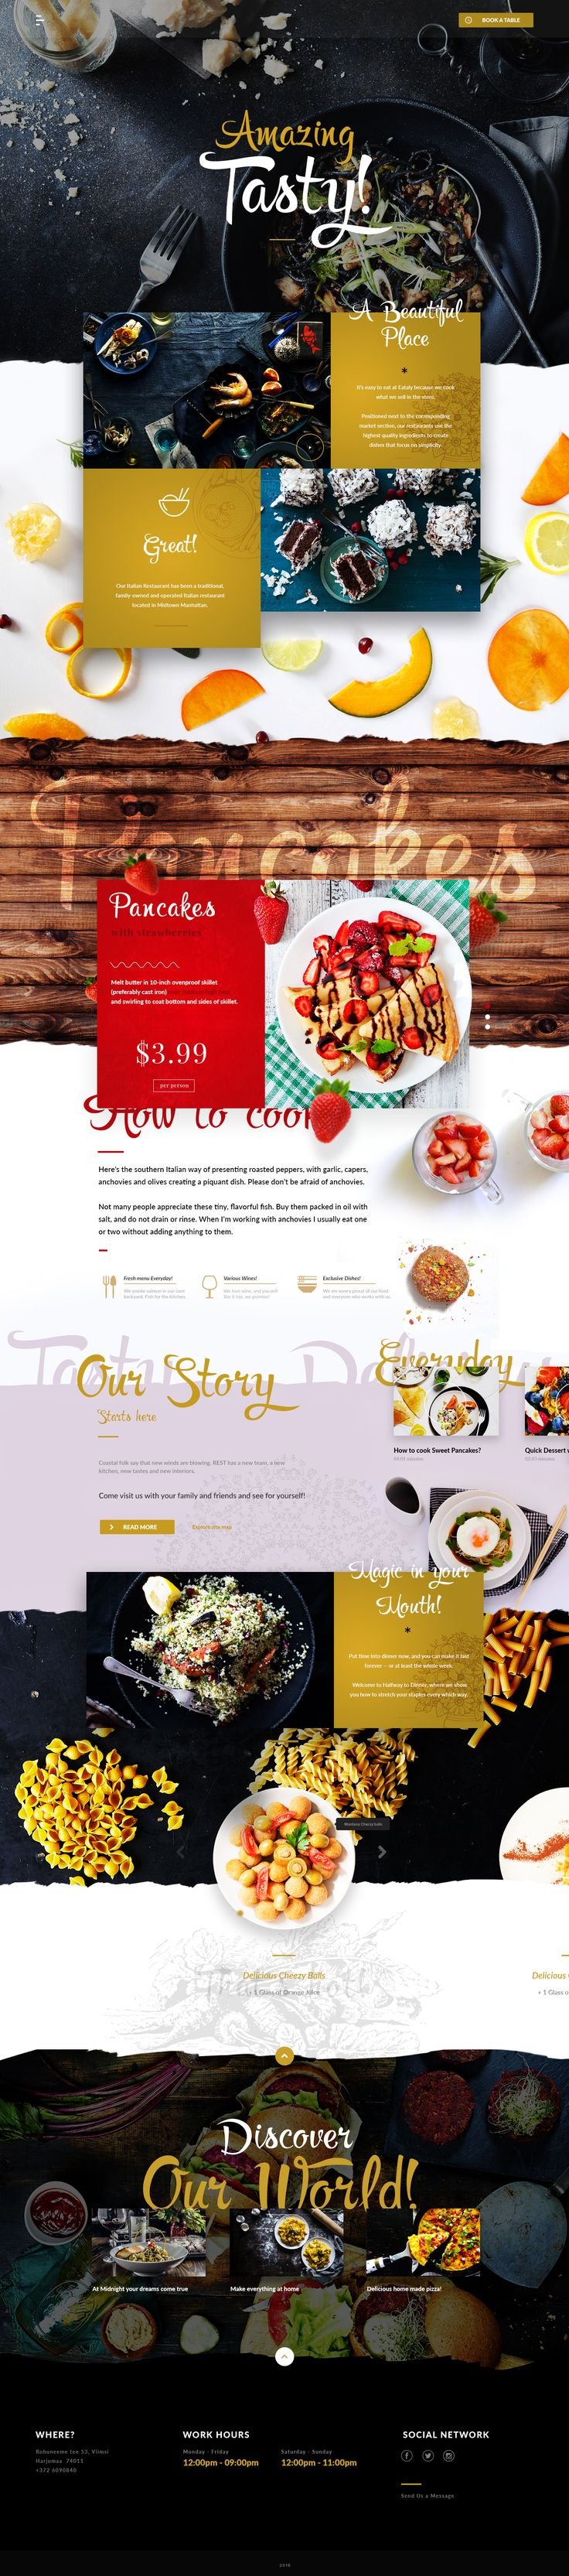 Food Restaurant by Vitali Zakharoff on